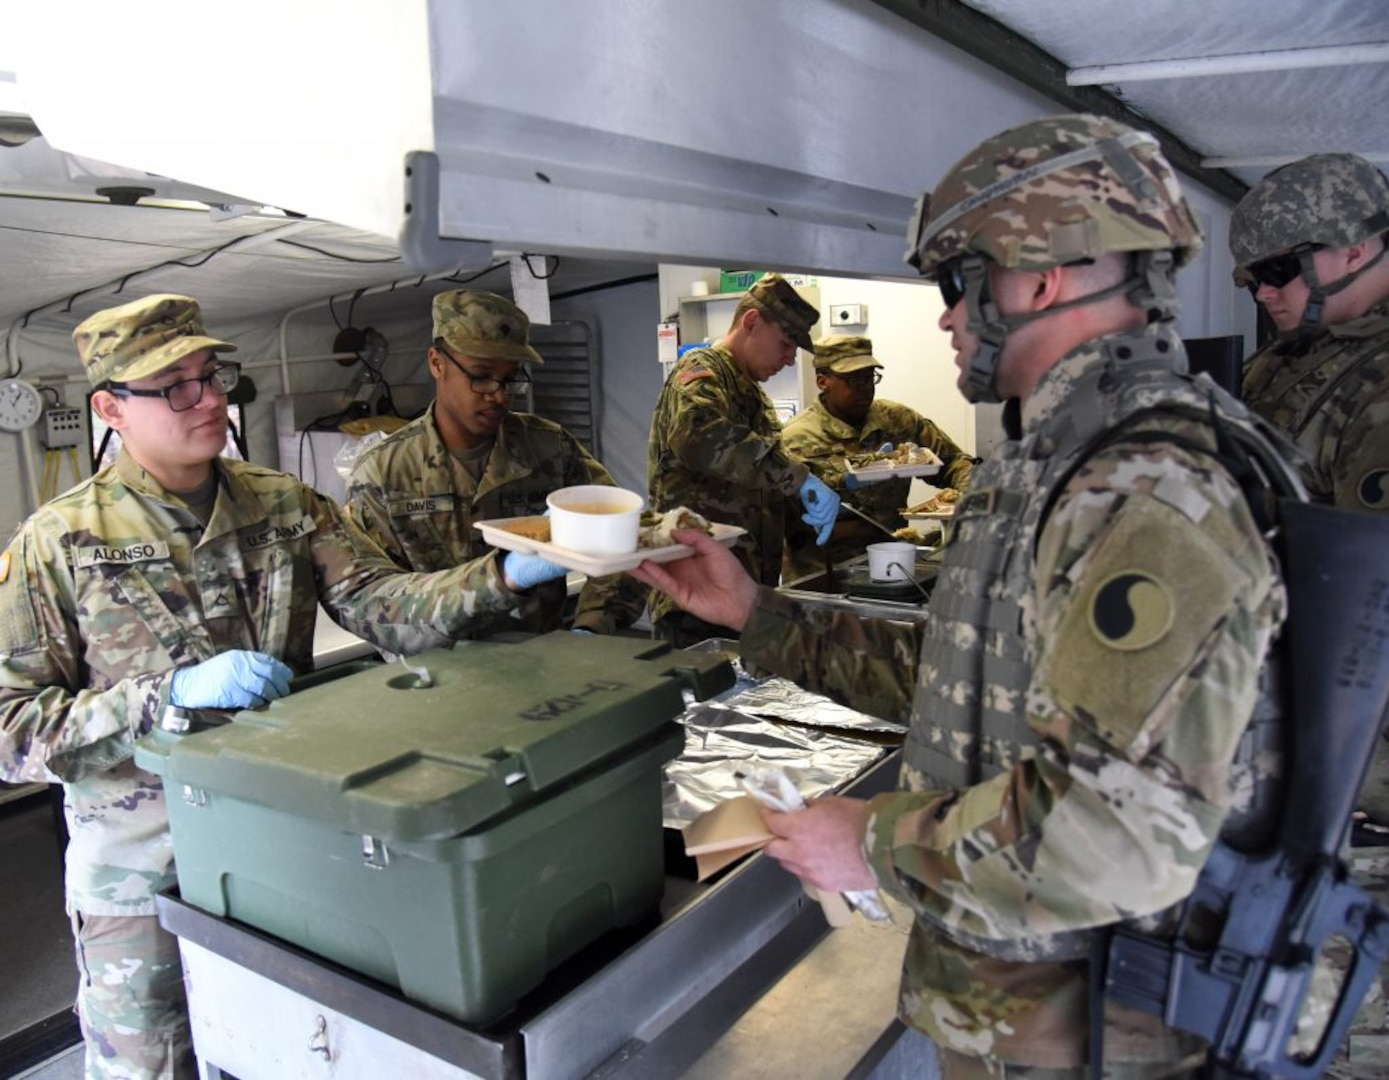 429th BSB competes for national food service award